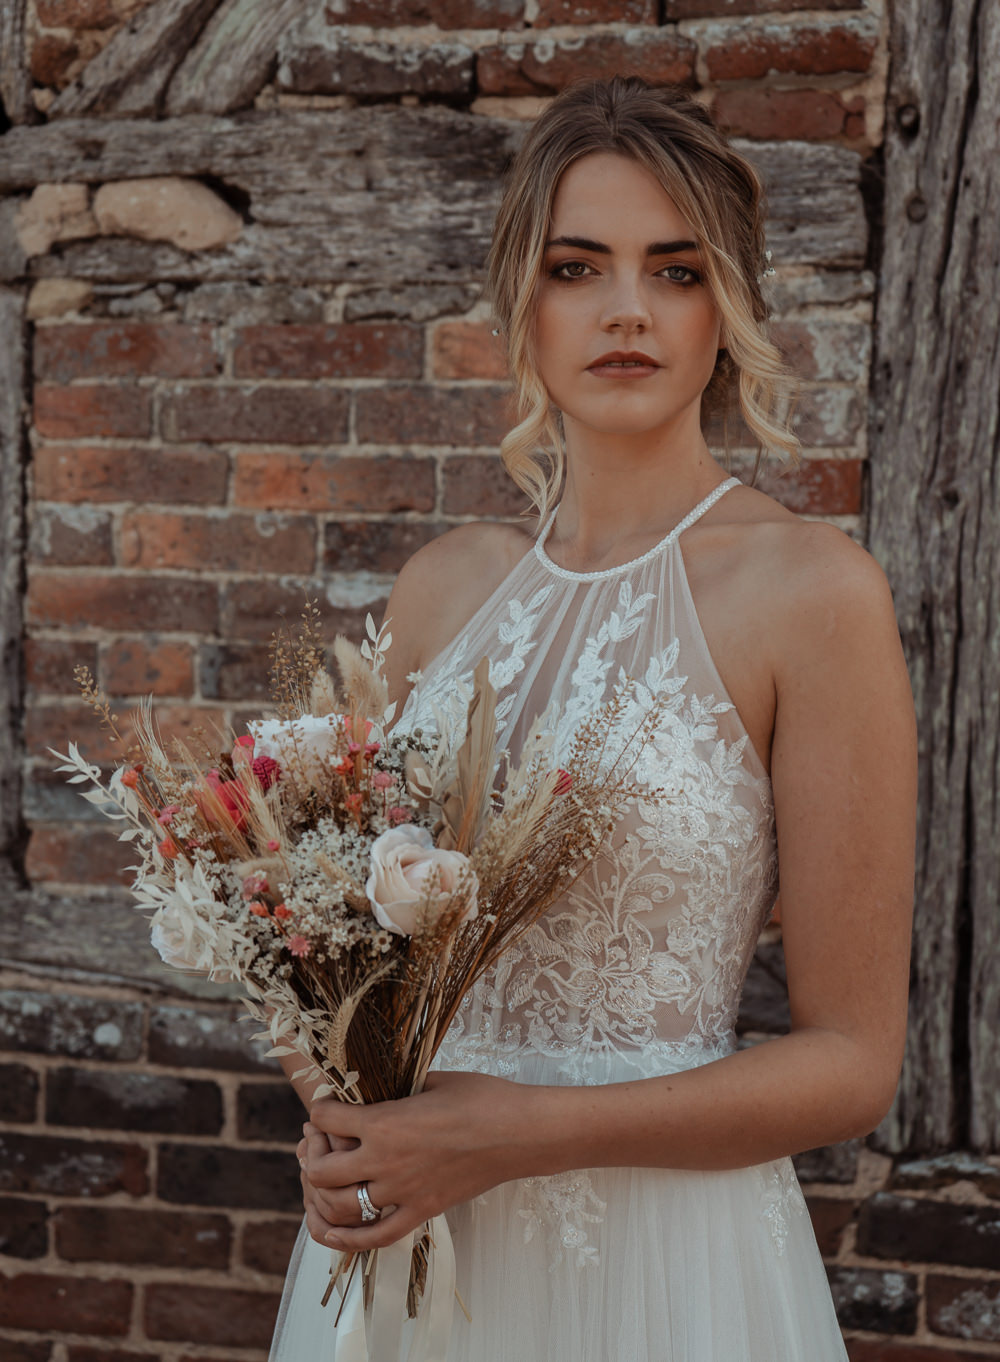 Bouquet Flowers Bride Bridal Dried Flowers Grass Rose Intimate Wedding Ideas Imogen Eve Photography